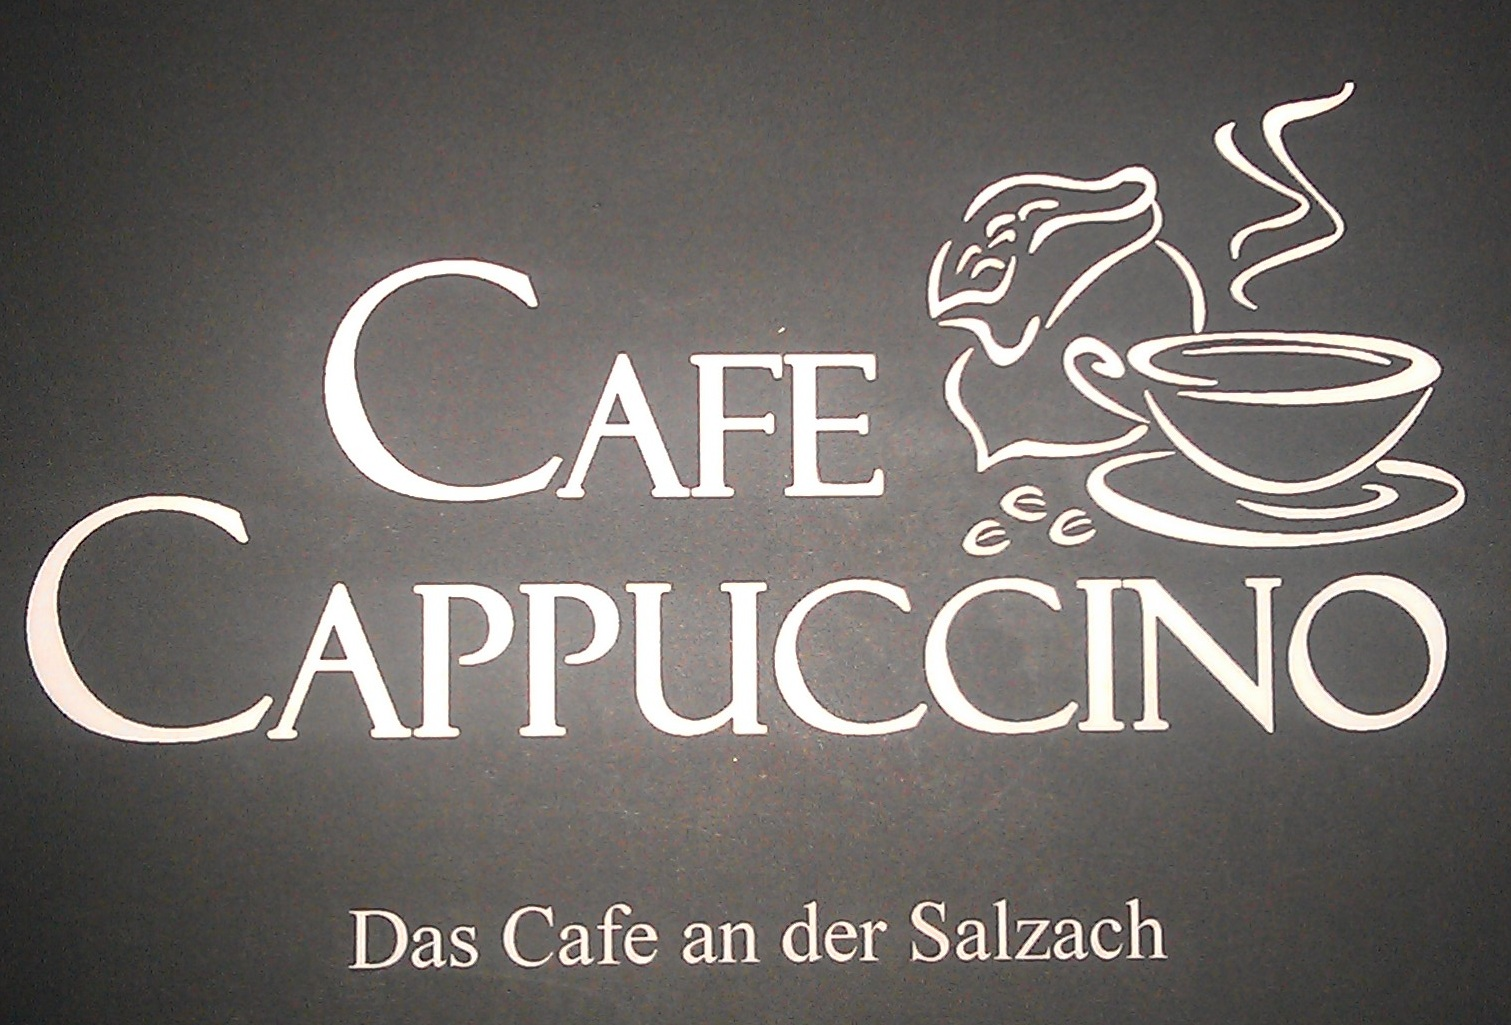 Cafe Cappucino - Smart-Order Lokaltext